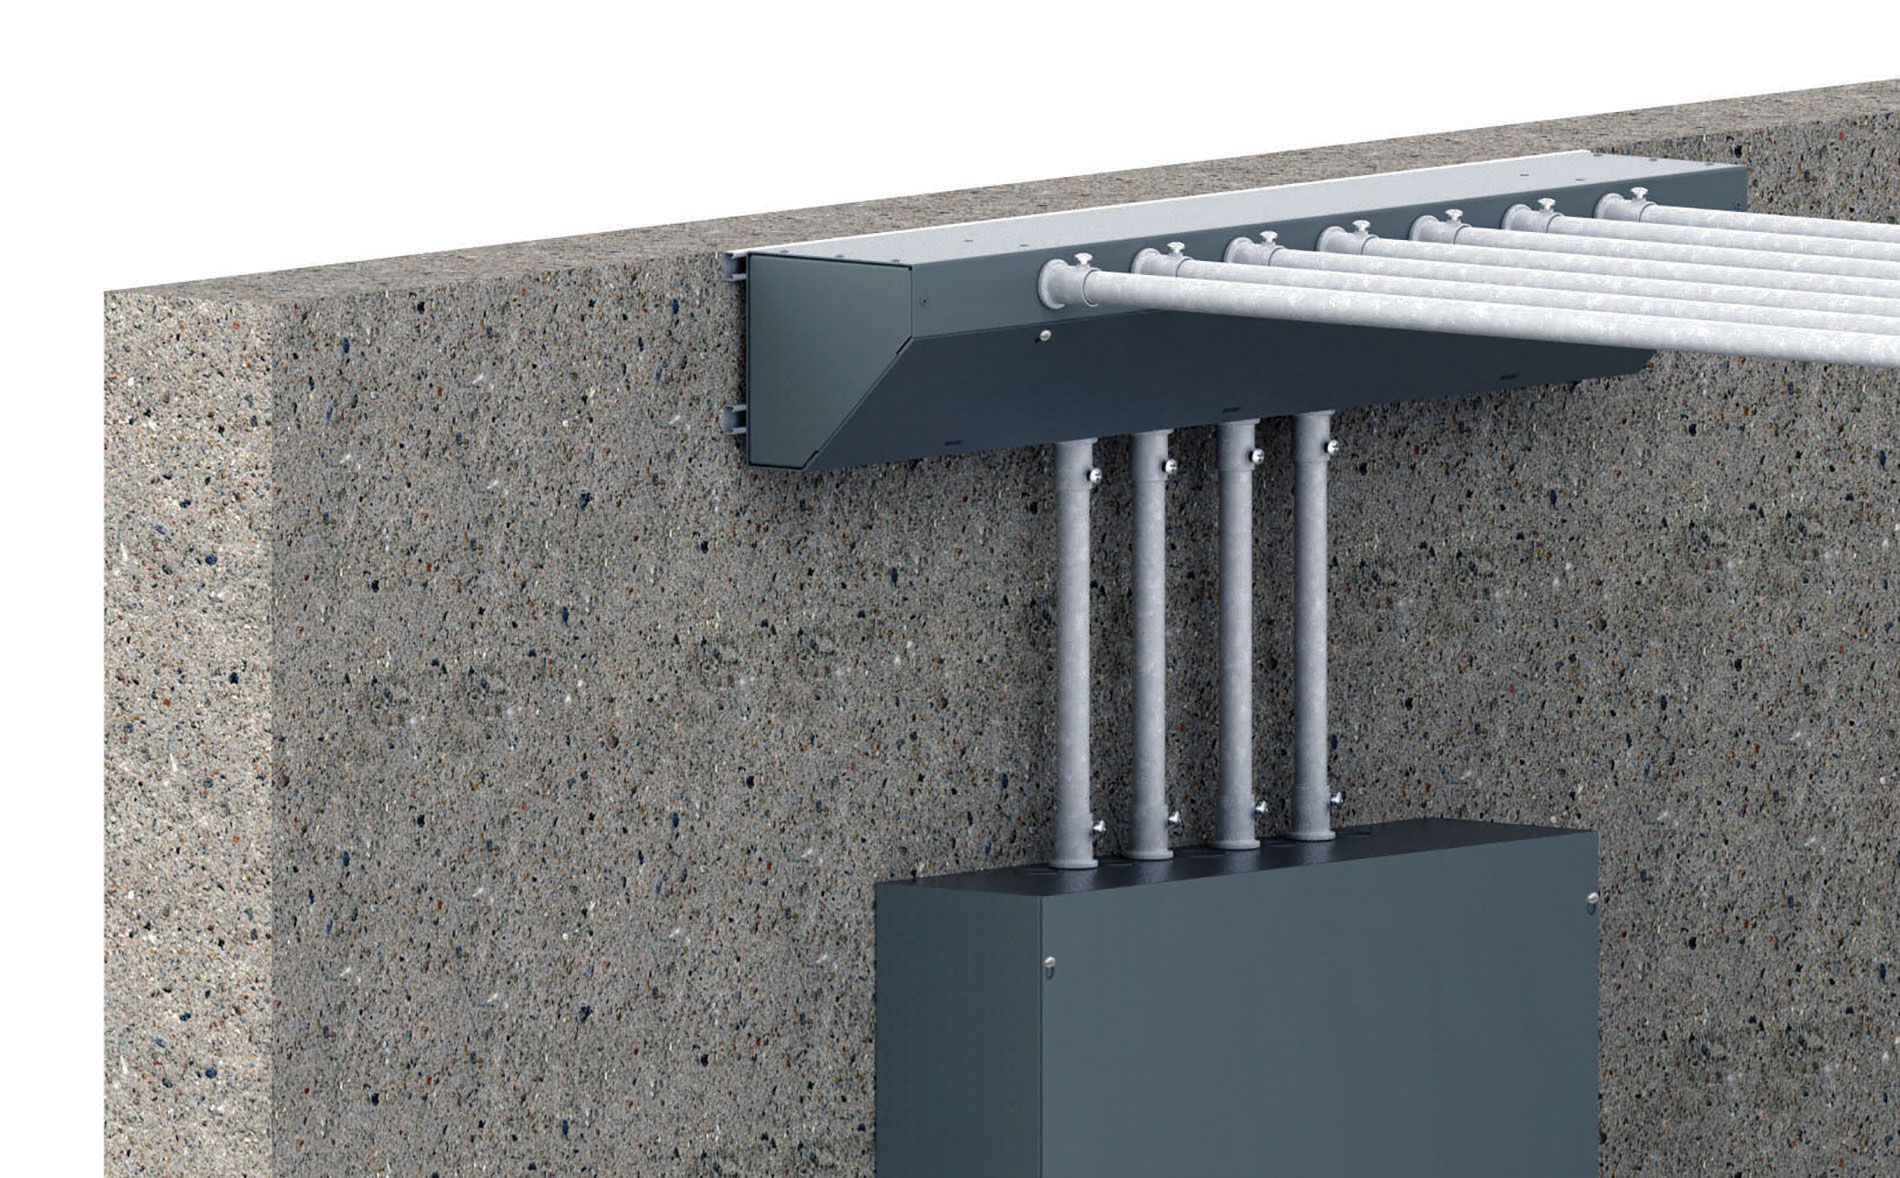 nVent's Angled Trough eliminates the need for 90-degree conduit bends, cuts installation time by 80 percent, and offers a flexible alternative to traditional troughs for wire distribution, junction and termination in typical electrical room applications.